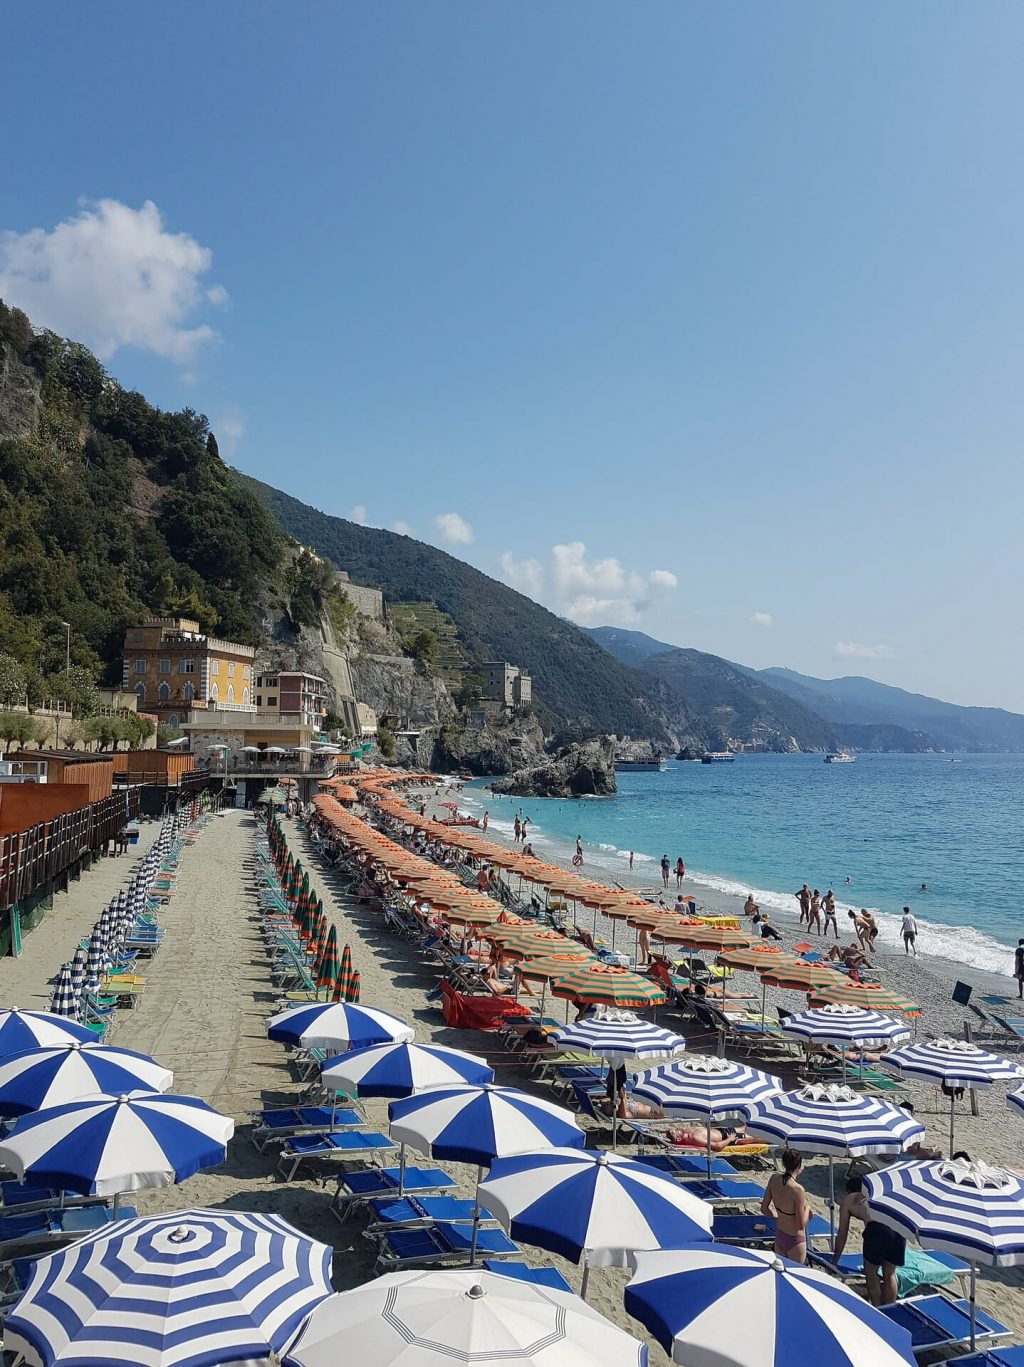 Clusters of colorful beach umbrellas shading visitors and Monterosso locals